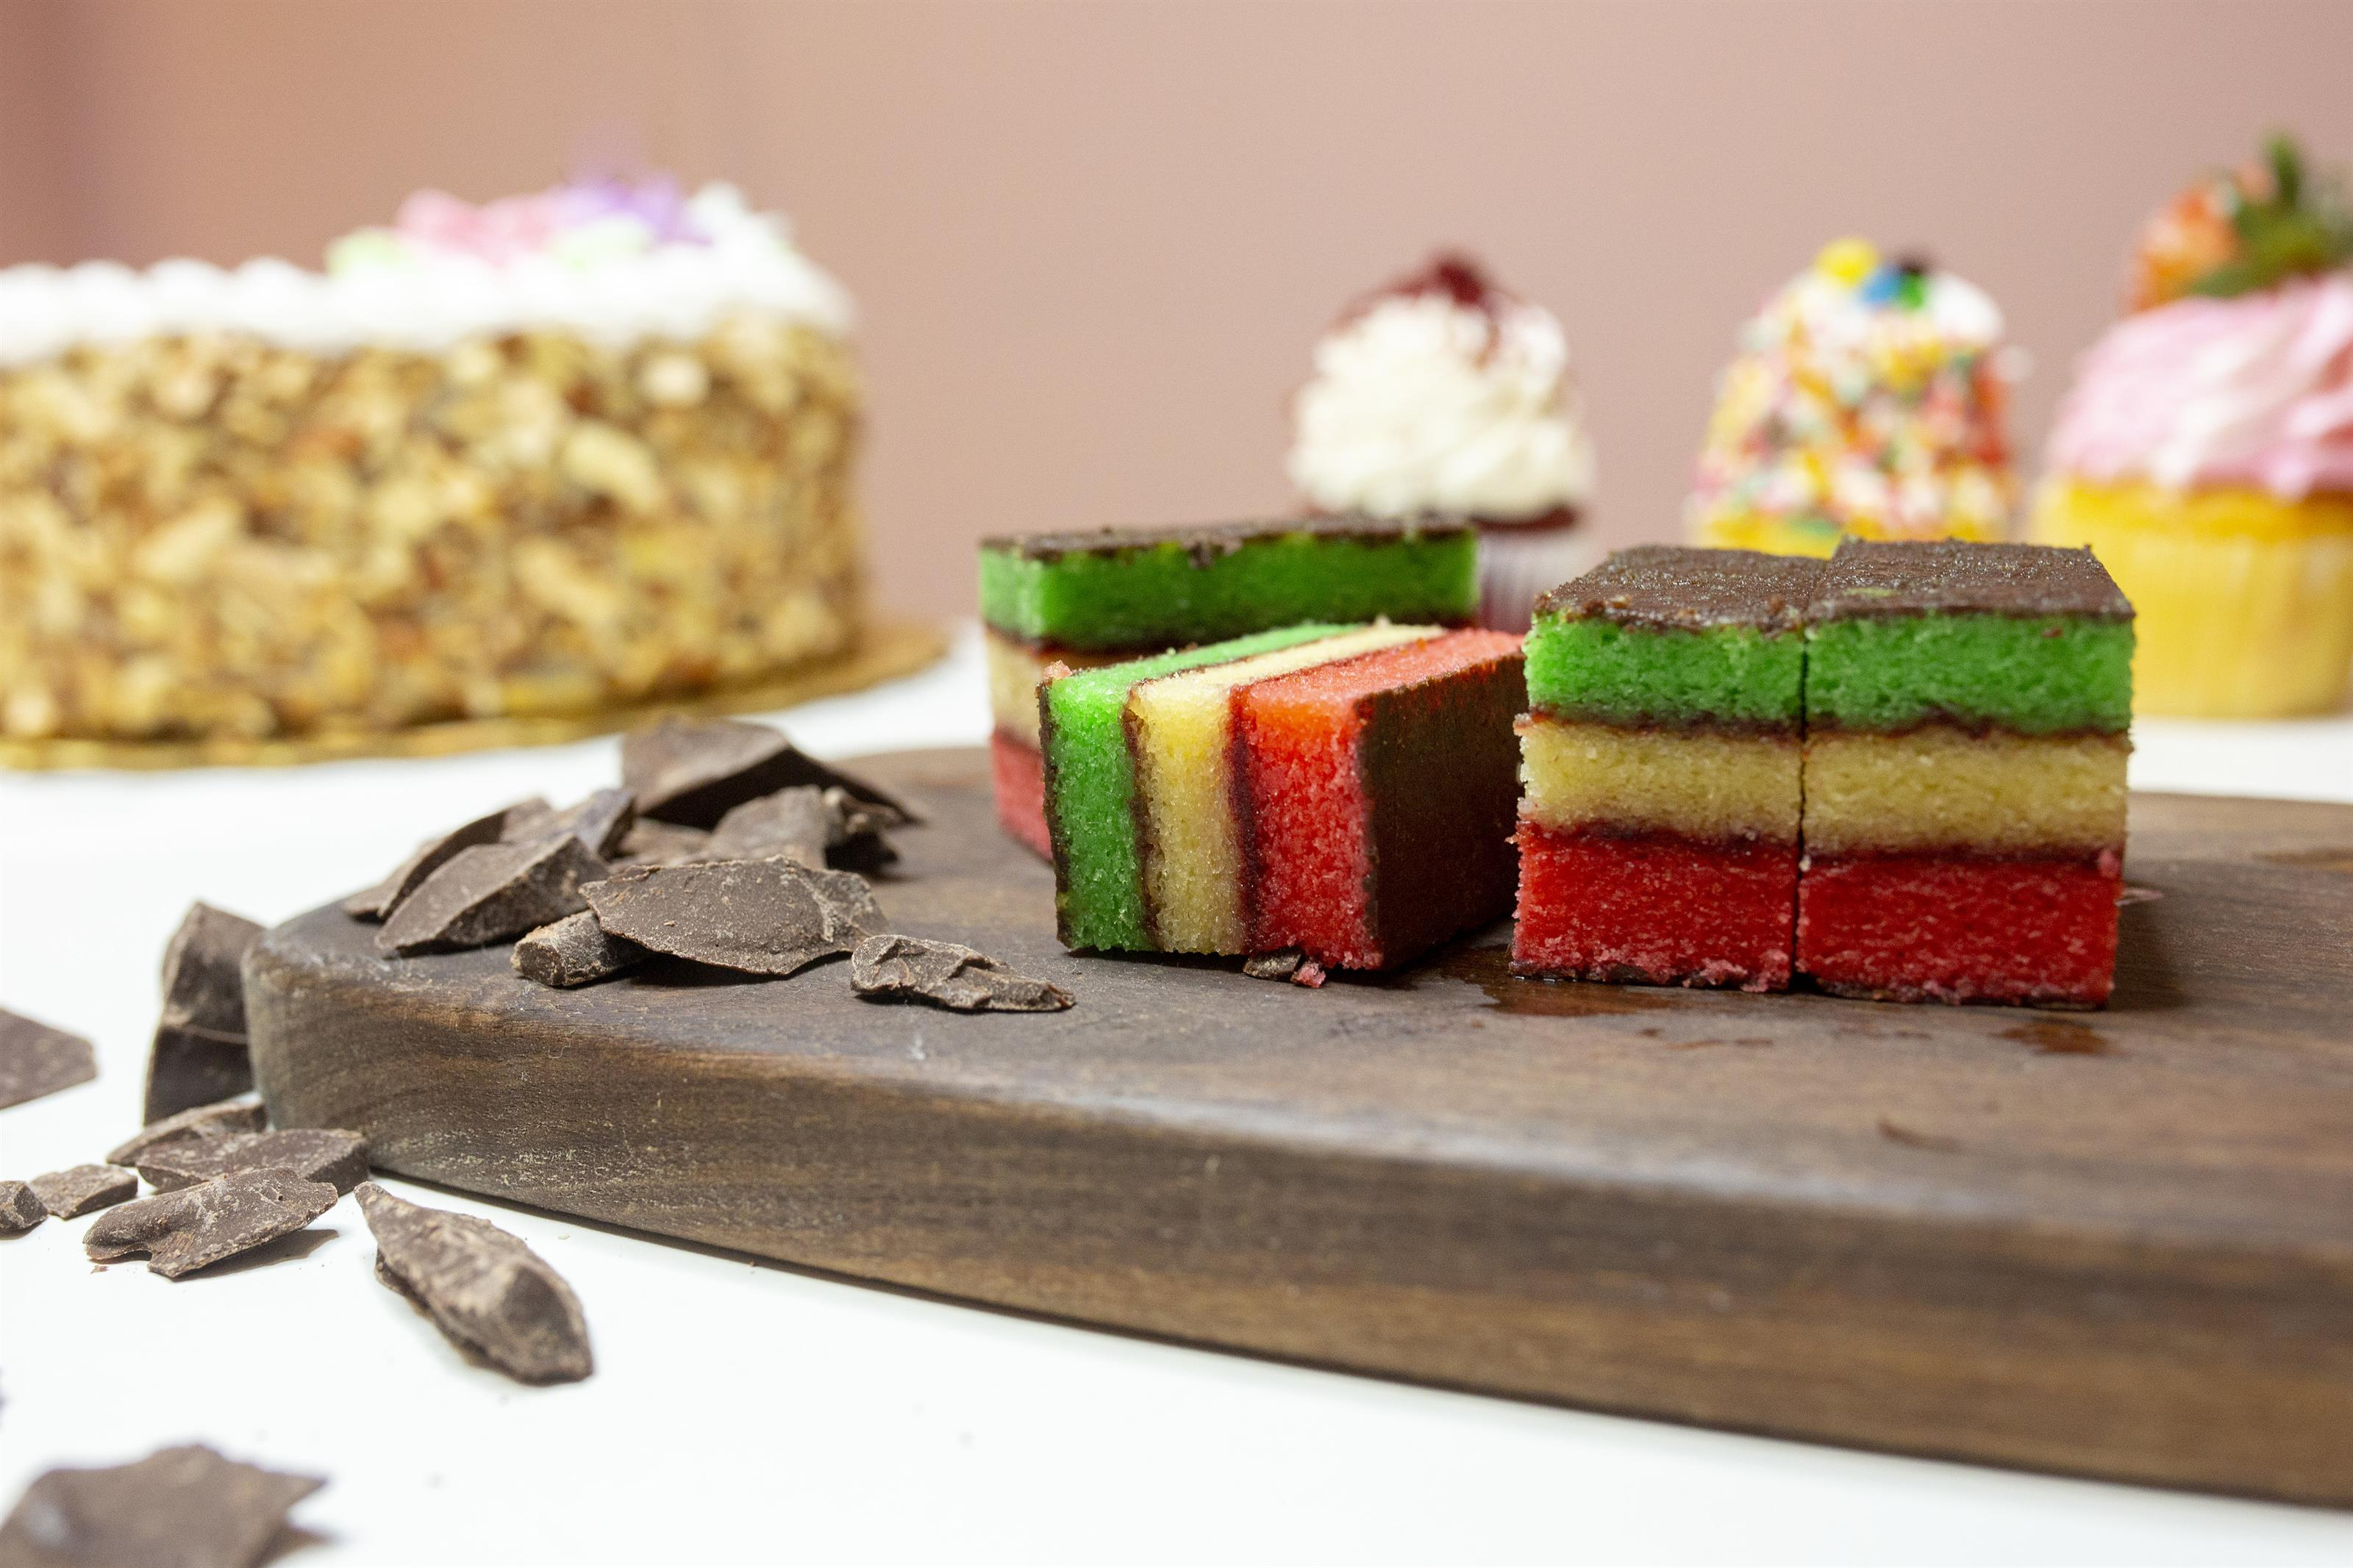 rainbow cookies on a wood board with chocolate pieces